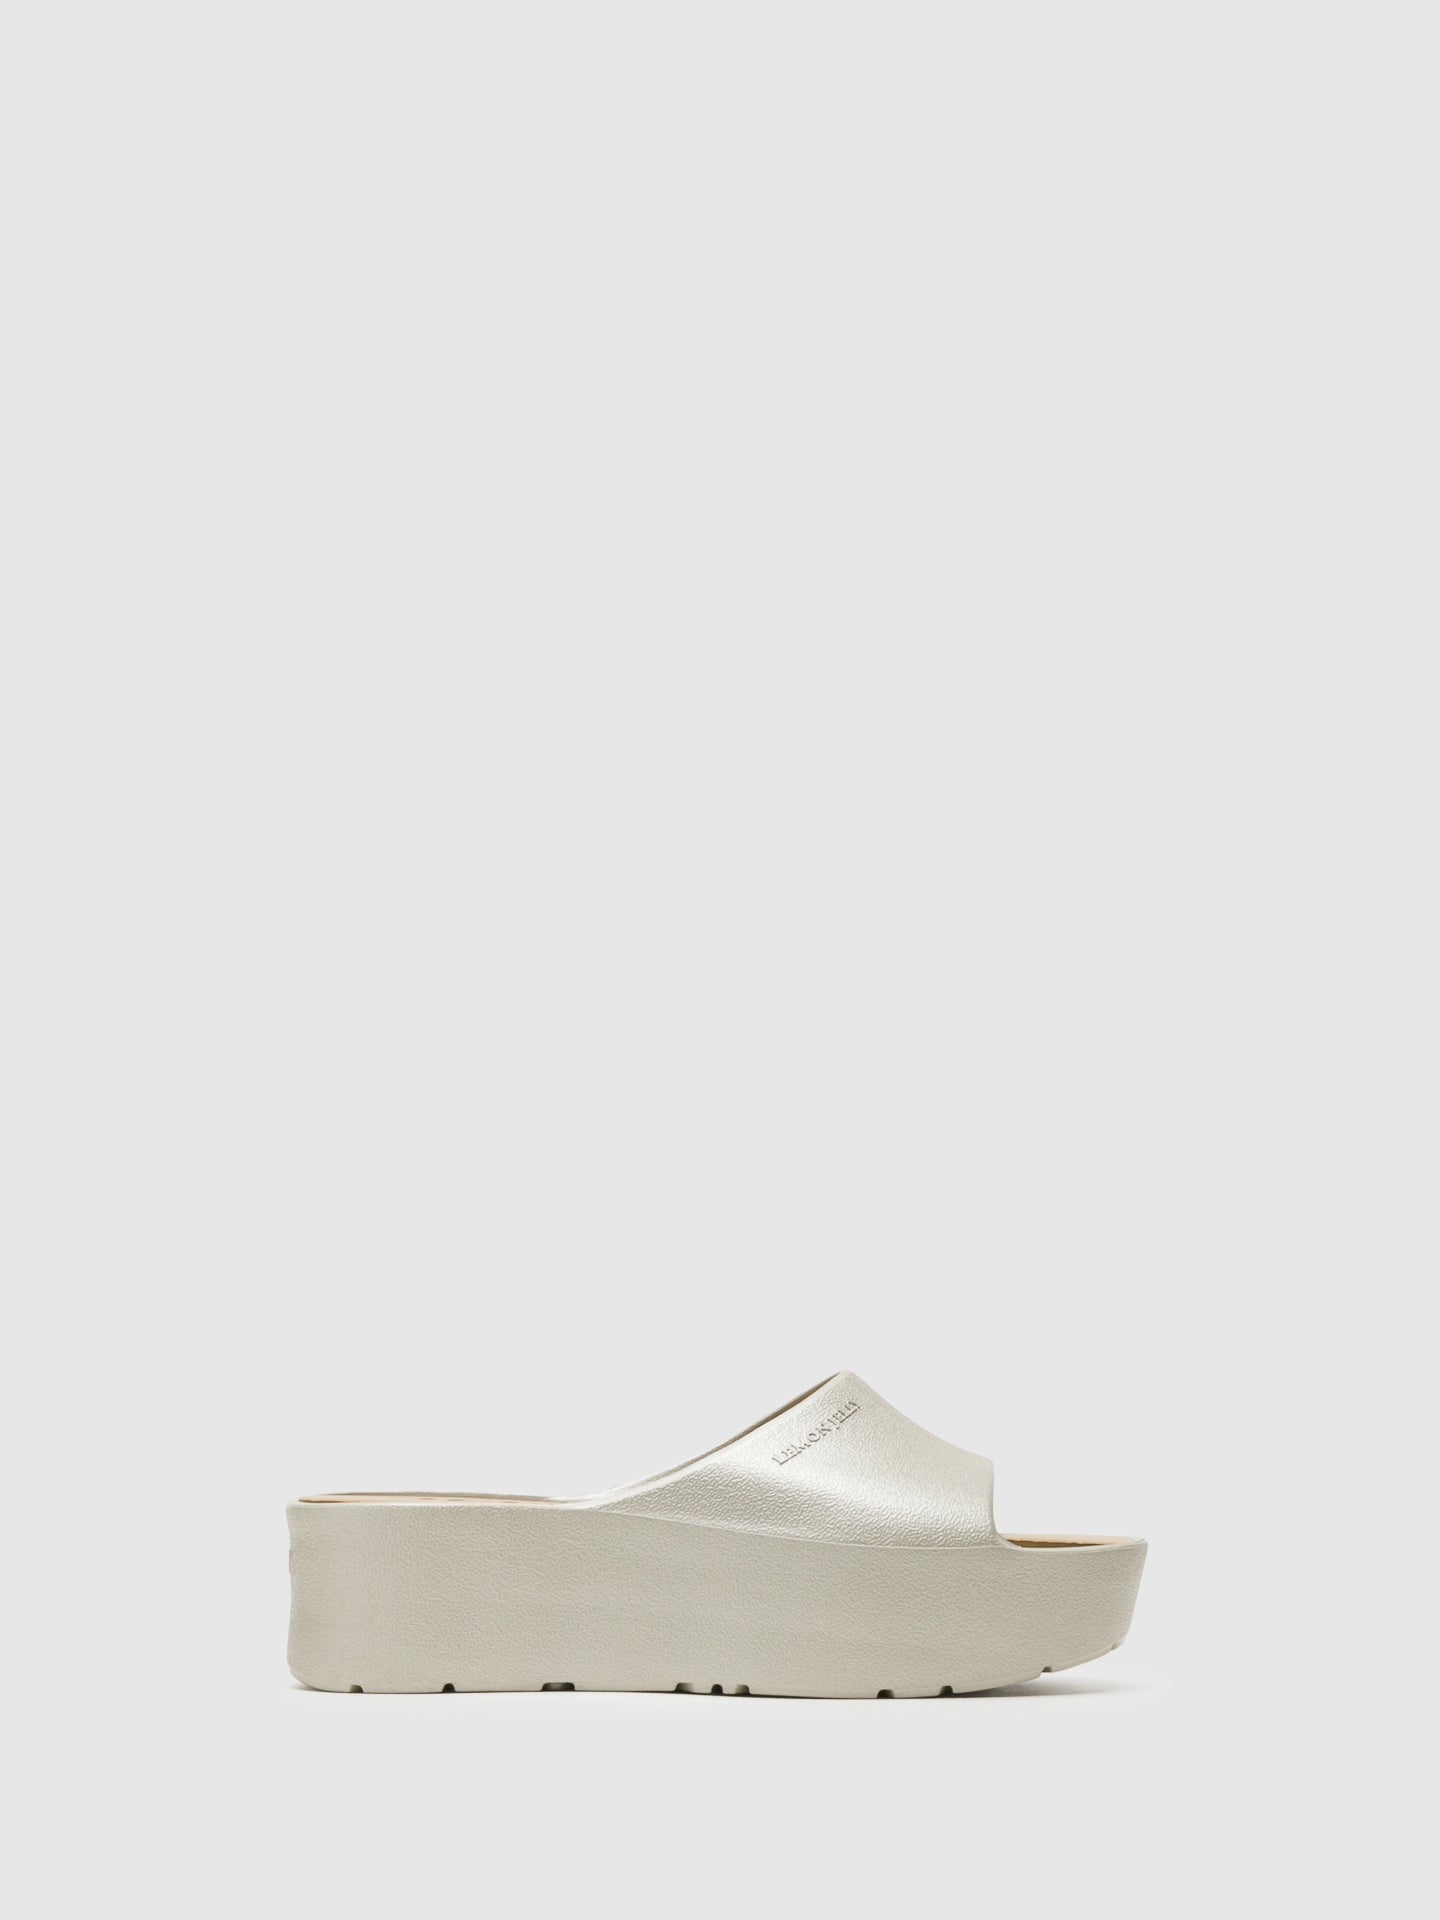 Lemon Jelly WhiteSmoke Platform Sandals